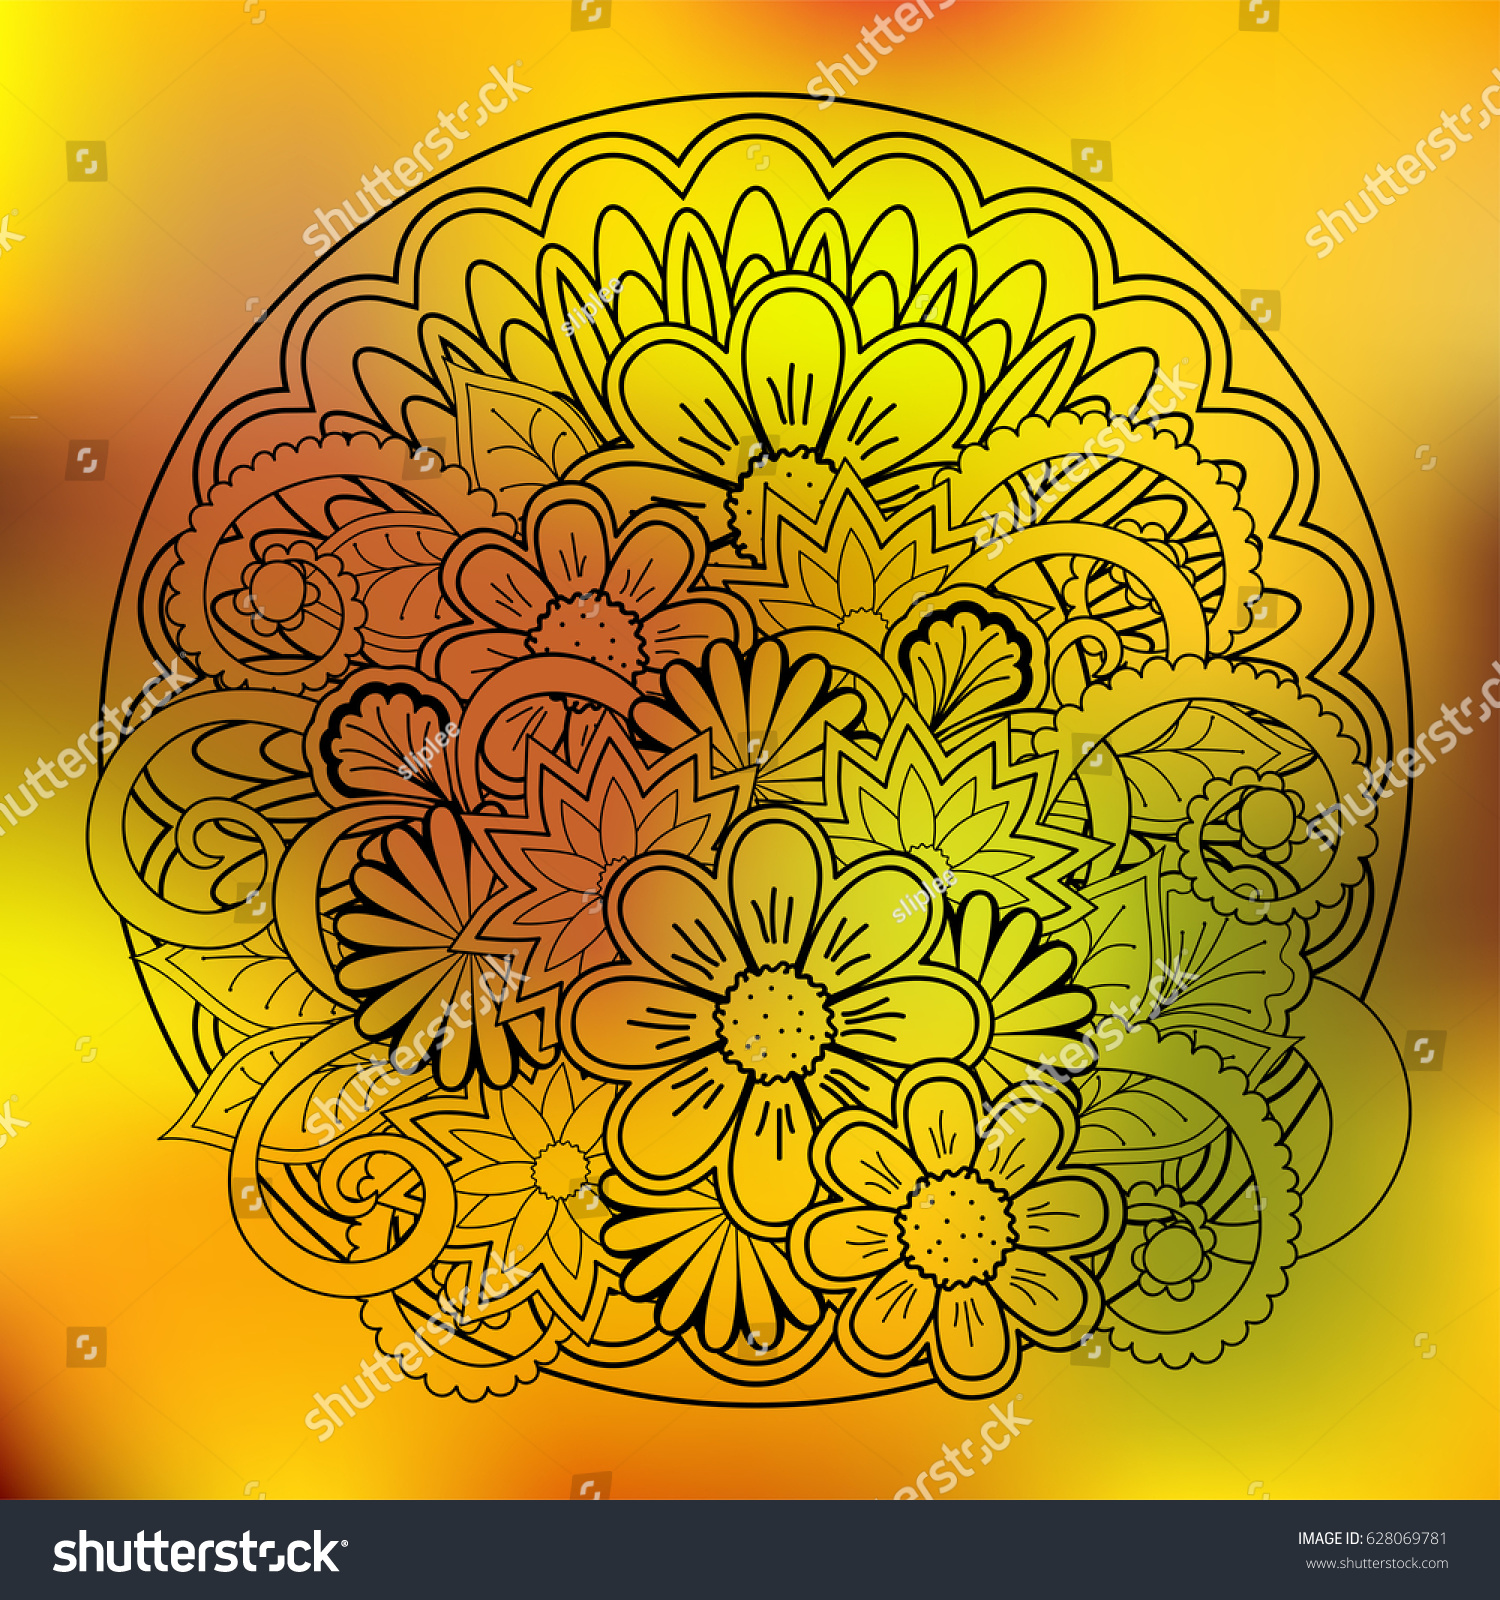 Lovely Doodle Art Wall Gallery - The Wall Art Decorations ...